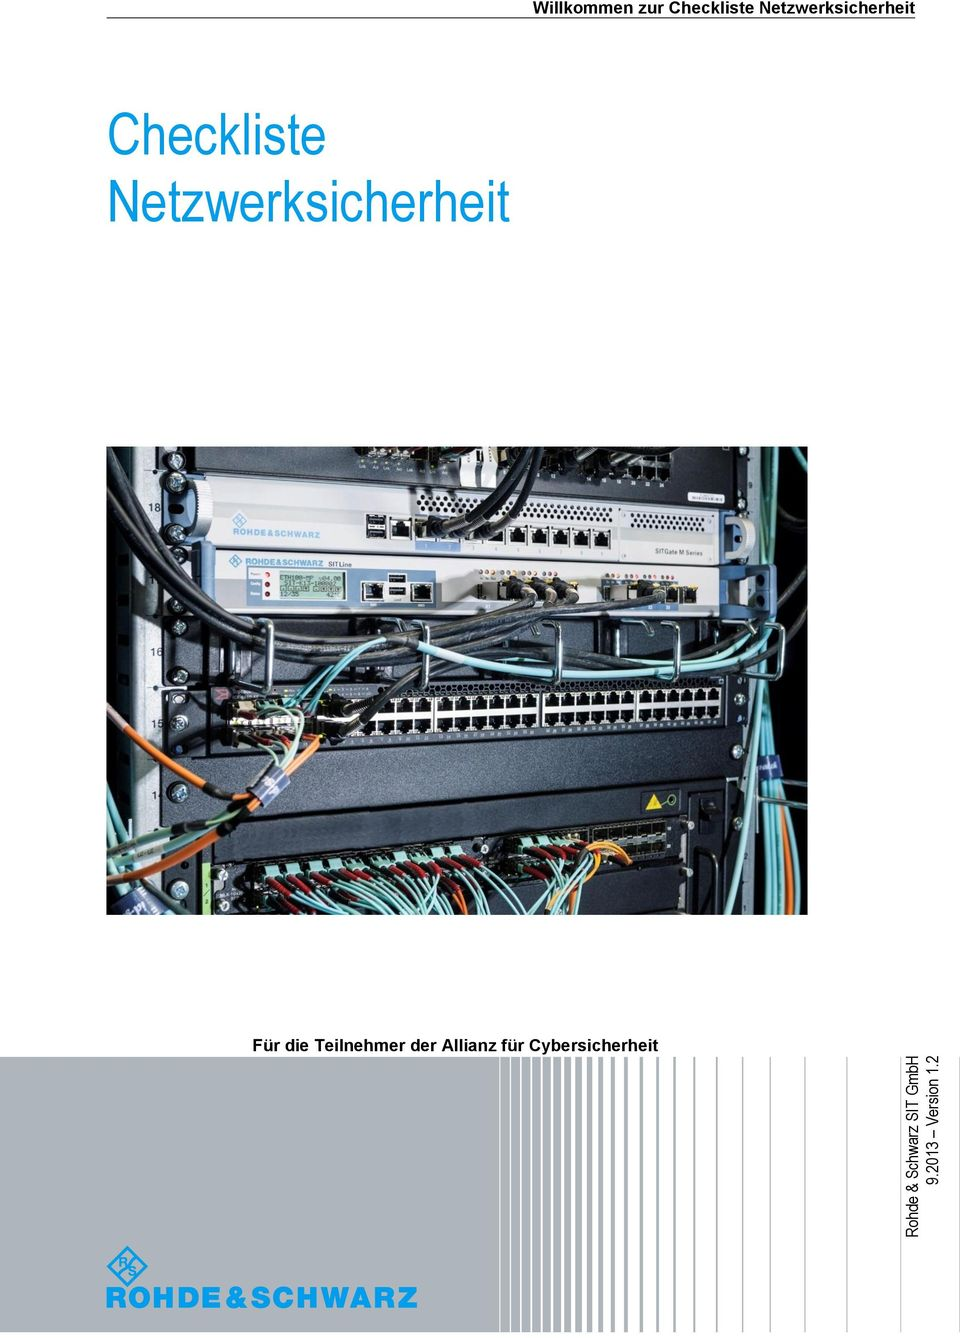 Checkliste Netzwerksicherheit Start print preview